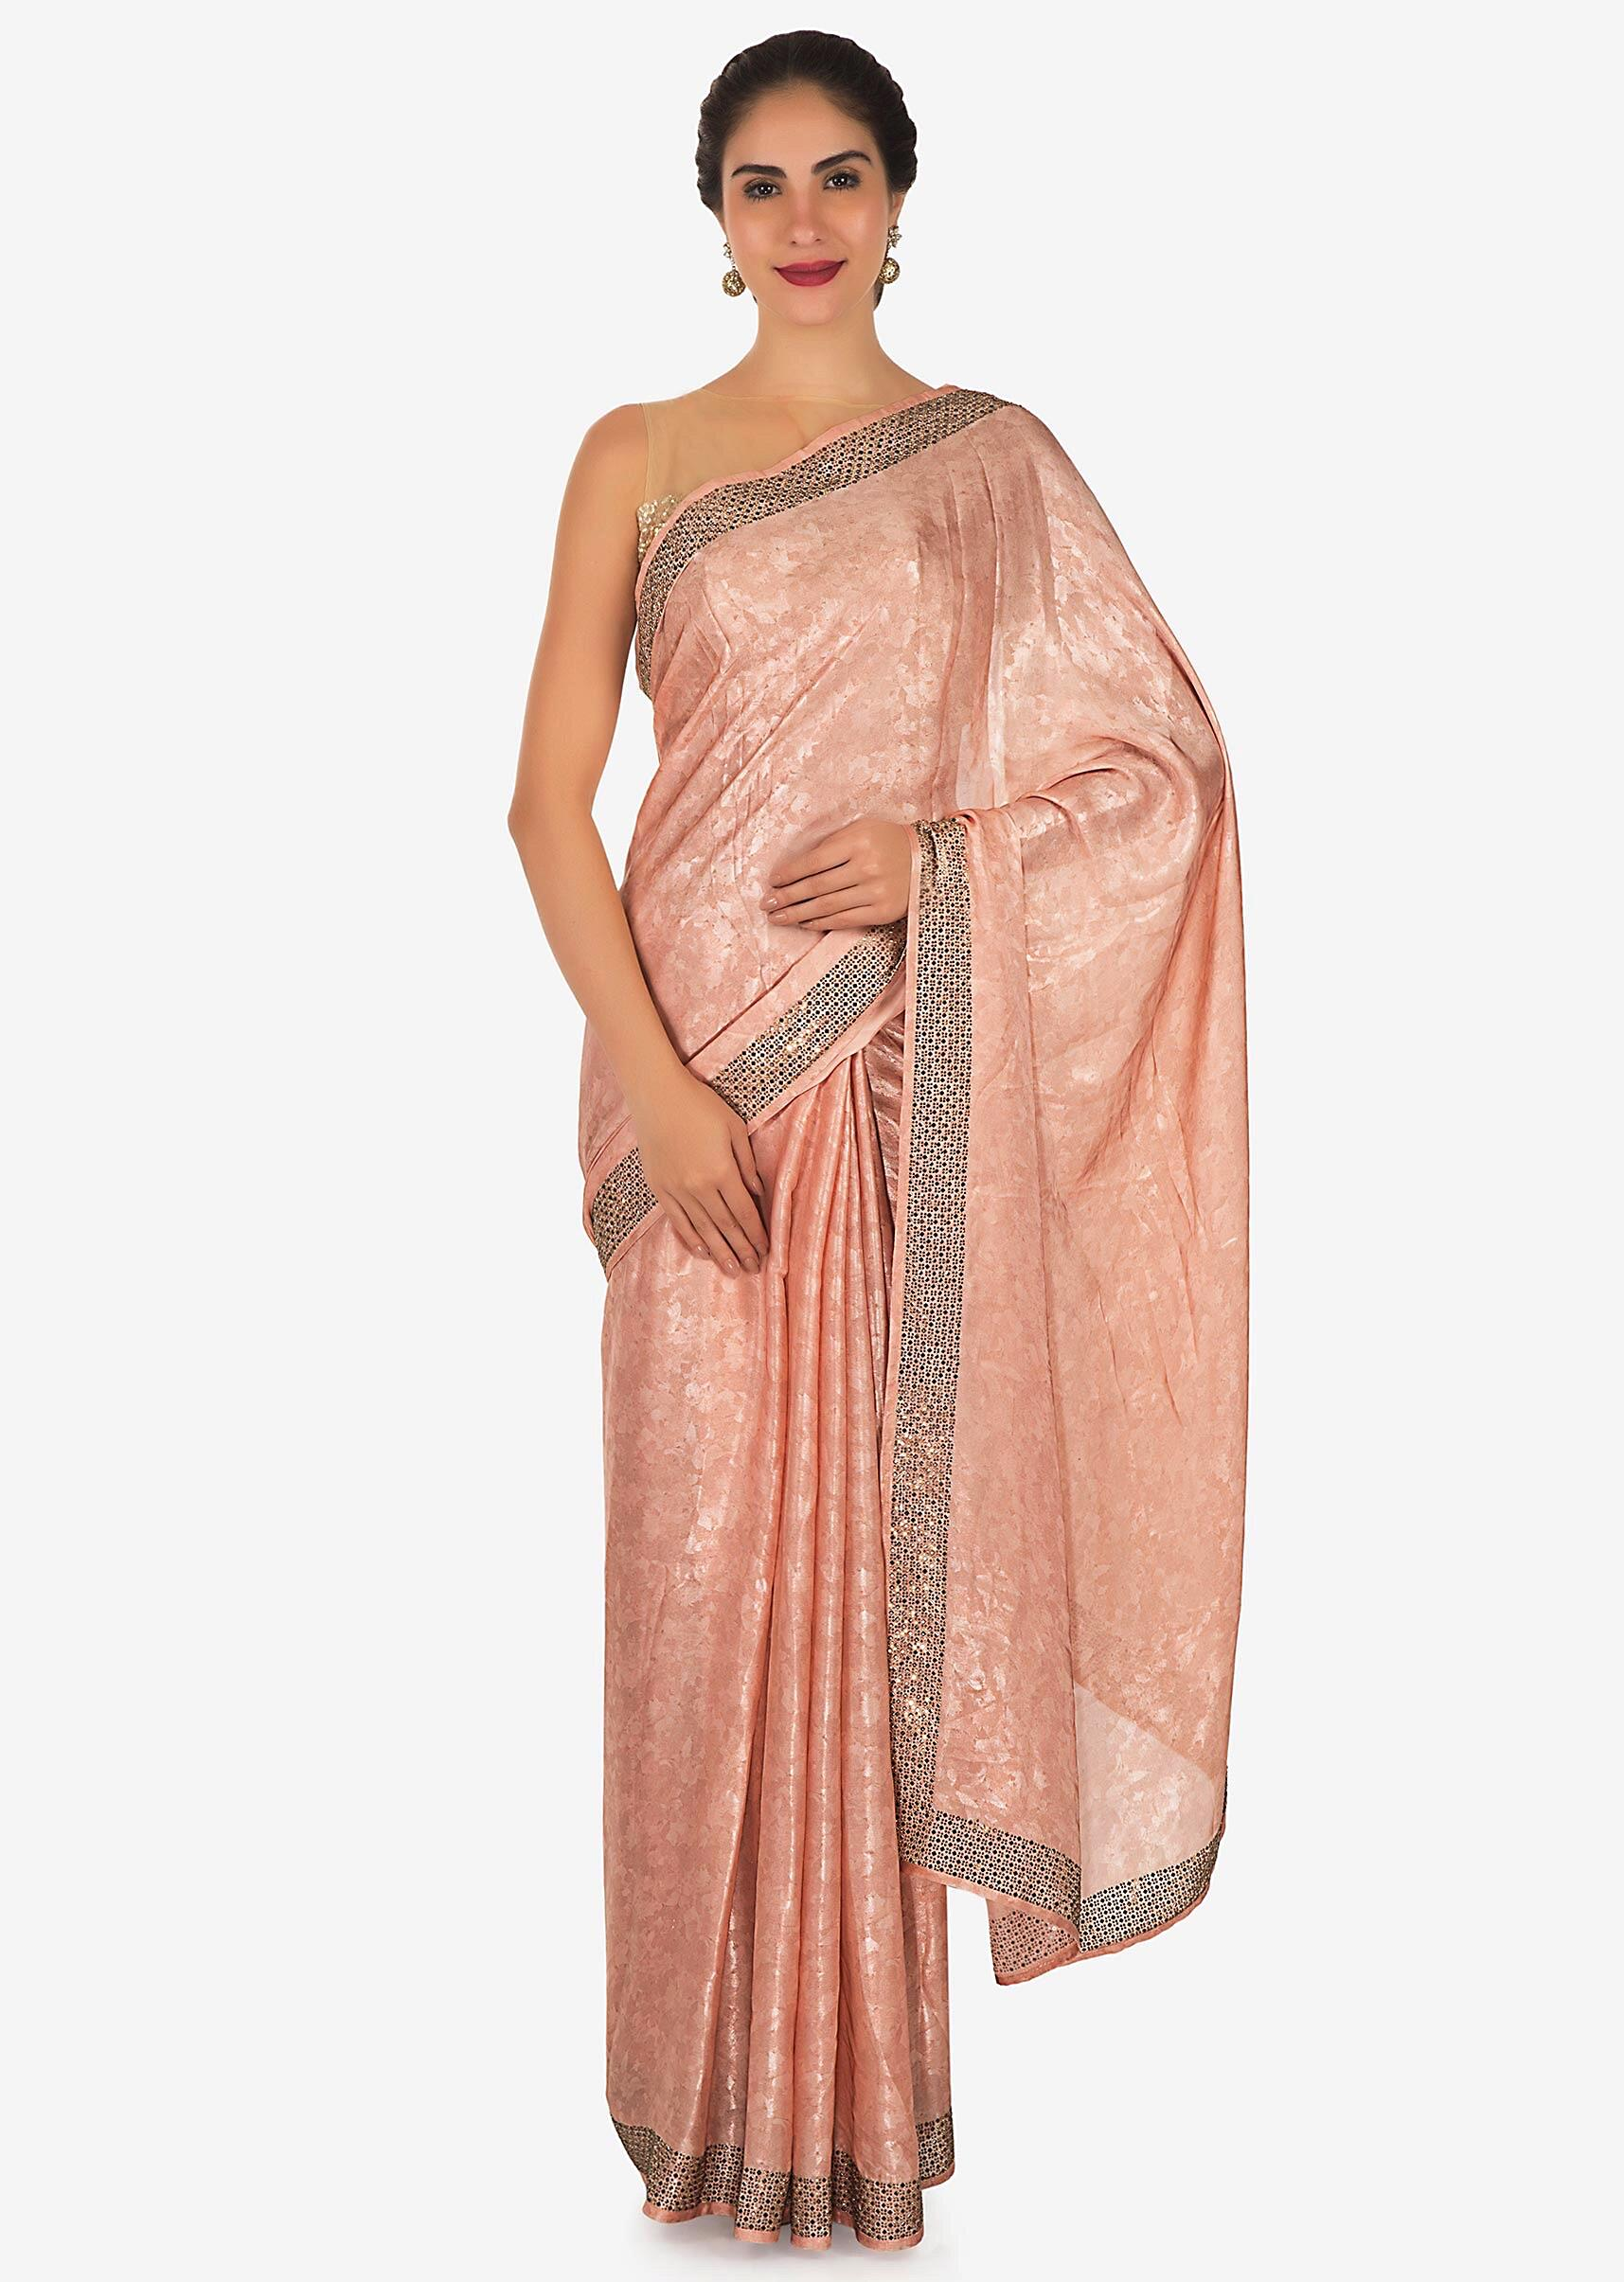 dbfca9bff06e9 Shimmer pink saree adorn in kundan and thread work only on KalkiMore Detail